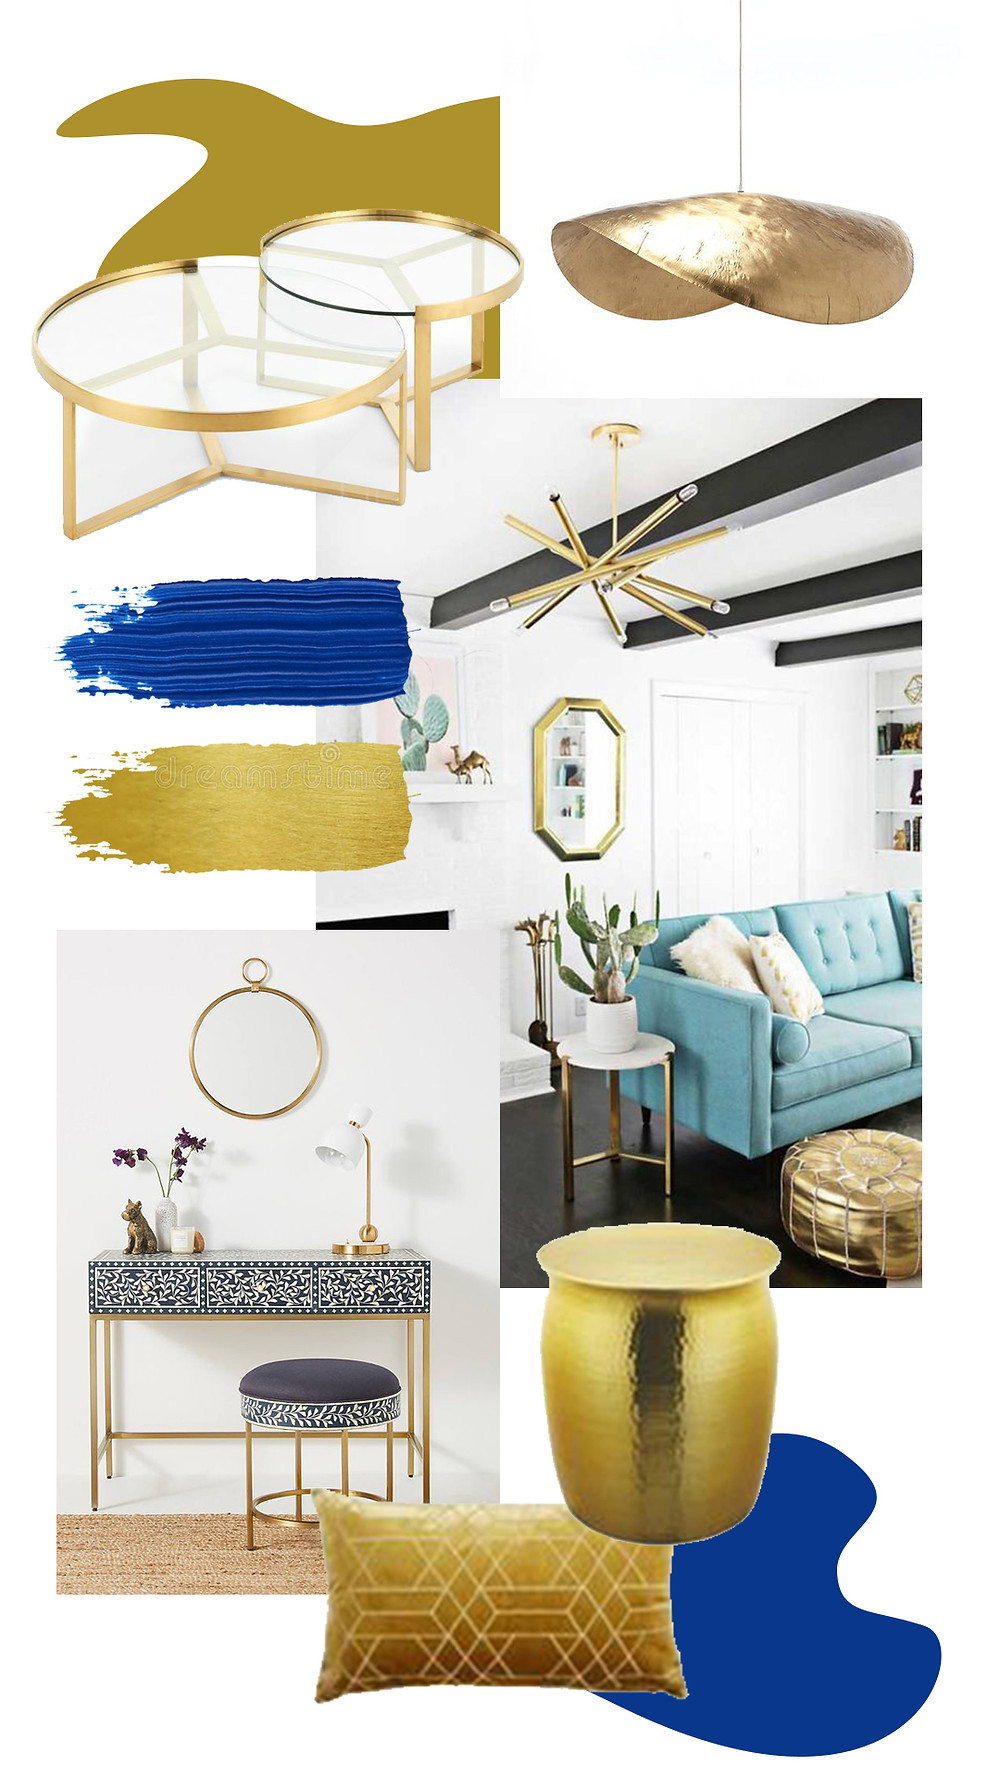 BRASS ACCENTS FOR FURNITURE